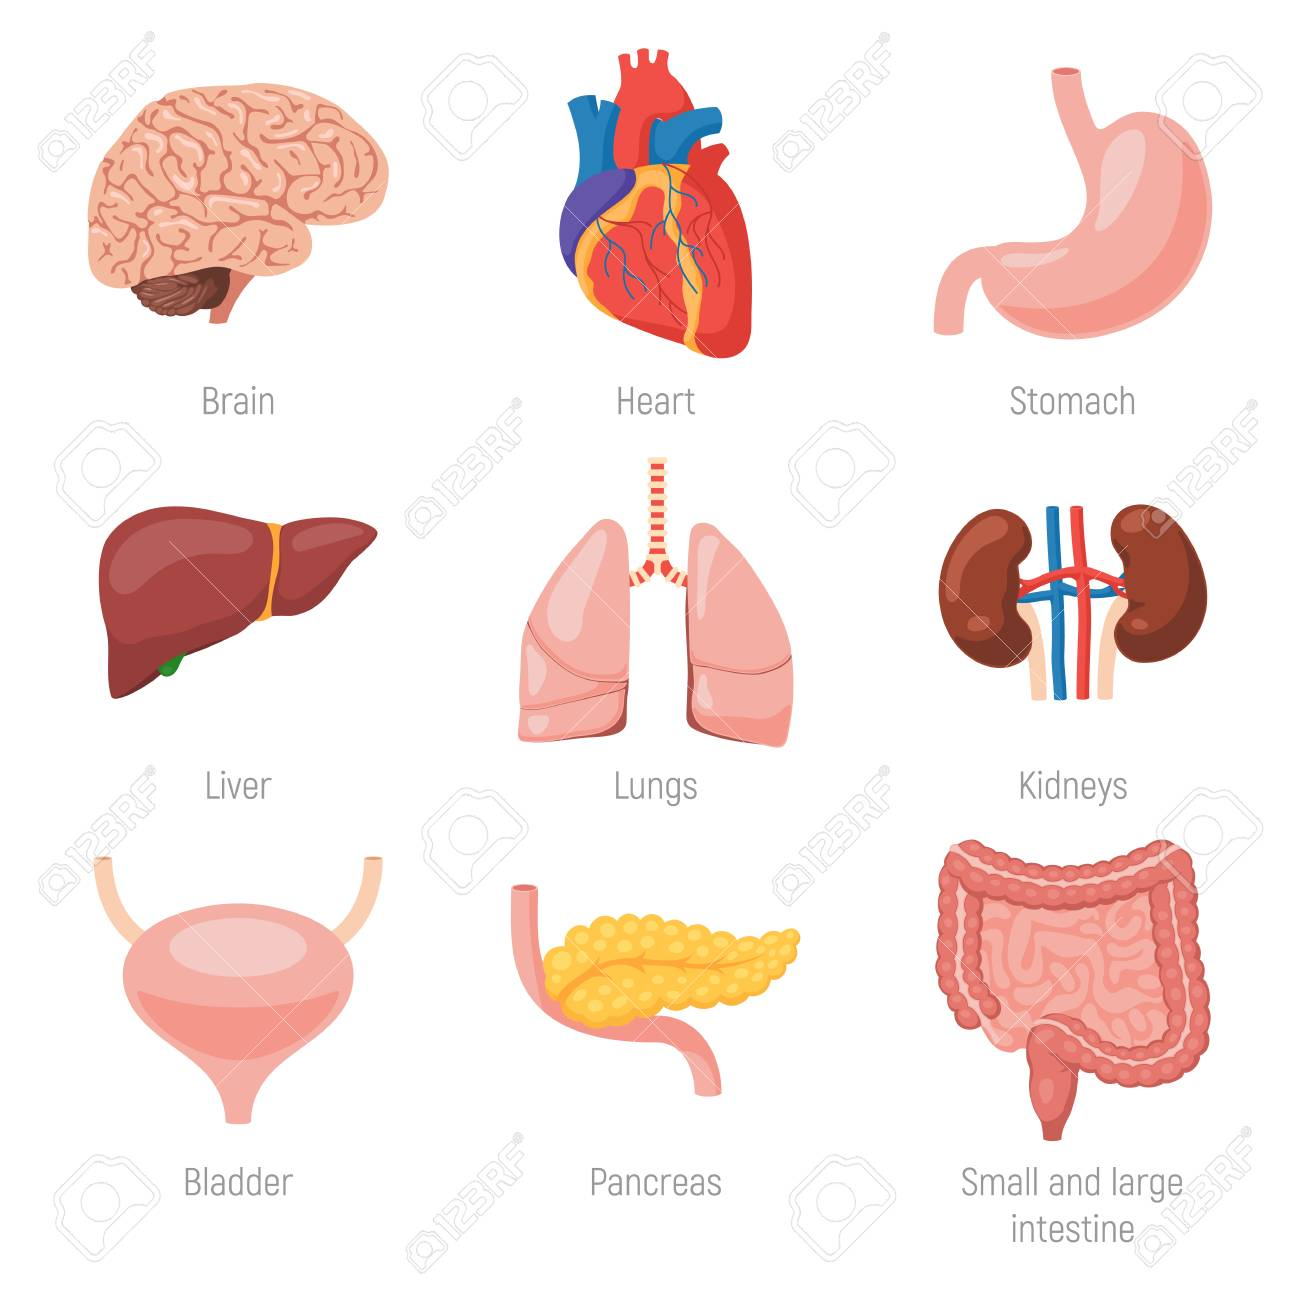 Human Internal Organs Royalty Free Cliparts Vectors And Stock